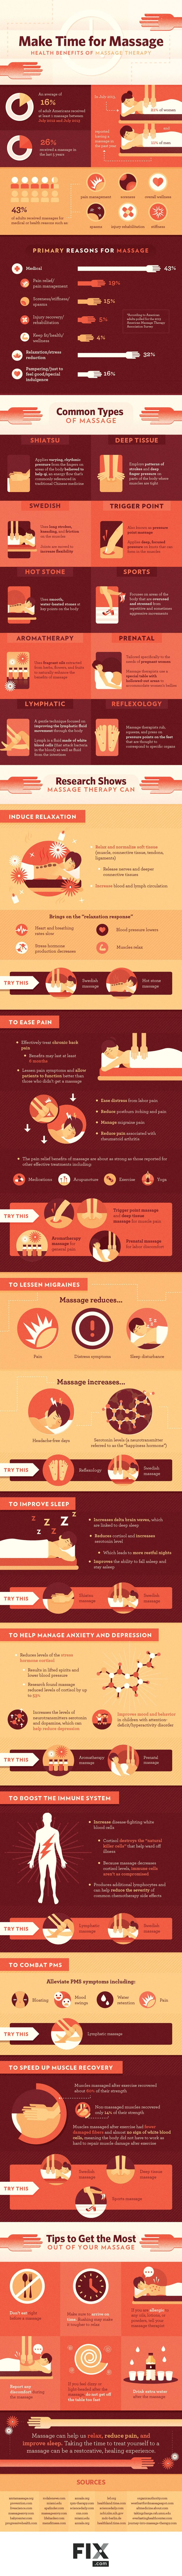 Make Time for Massage Health Benefits of Massage Therapy #infographic #Health #Massage